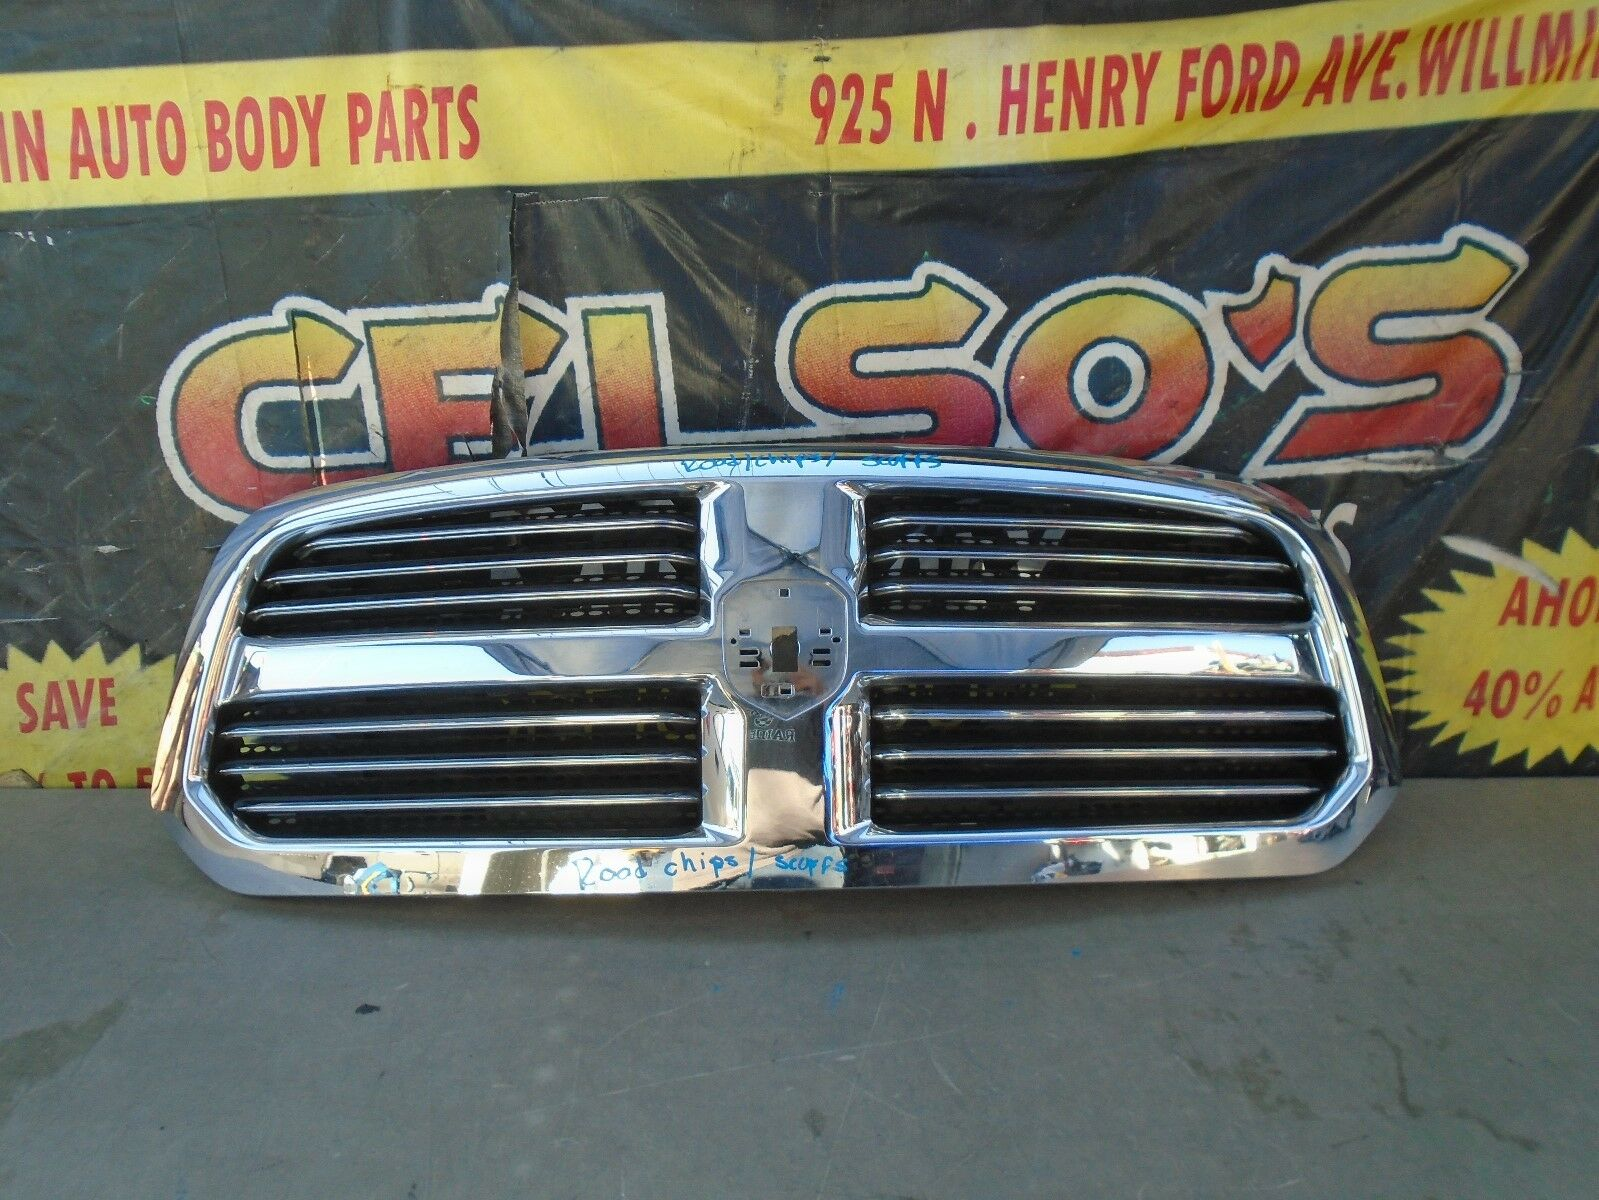 Used Dodge Ram 2500 Grilles for Sale - Page 4